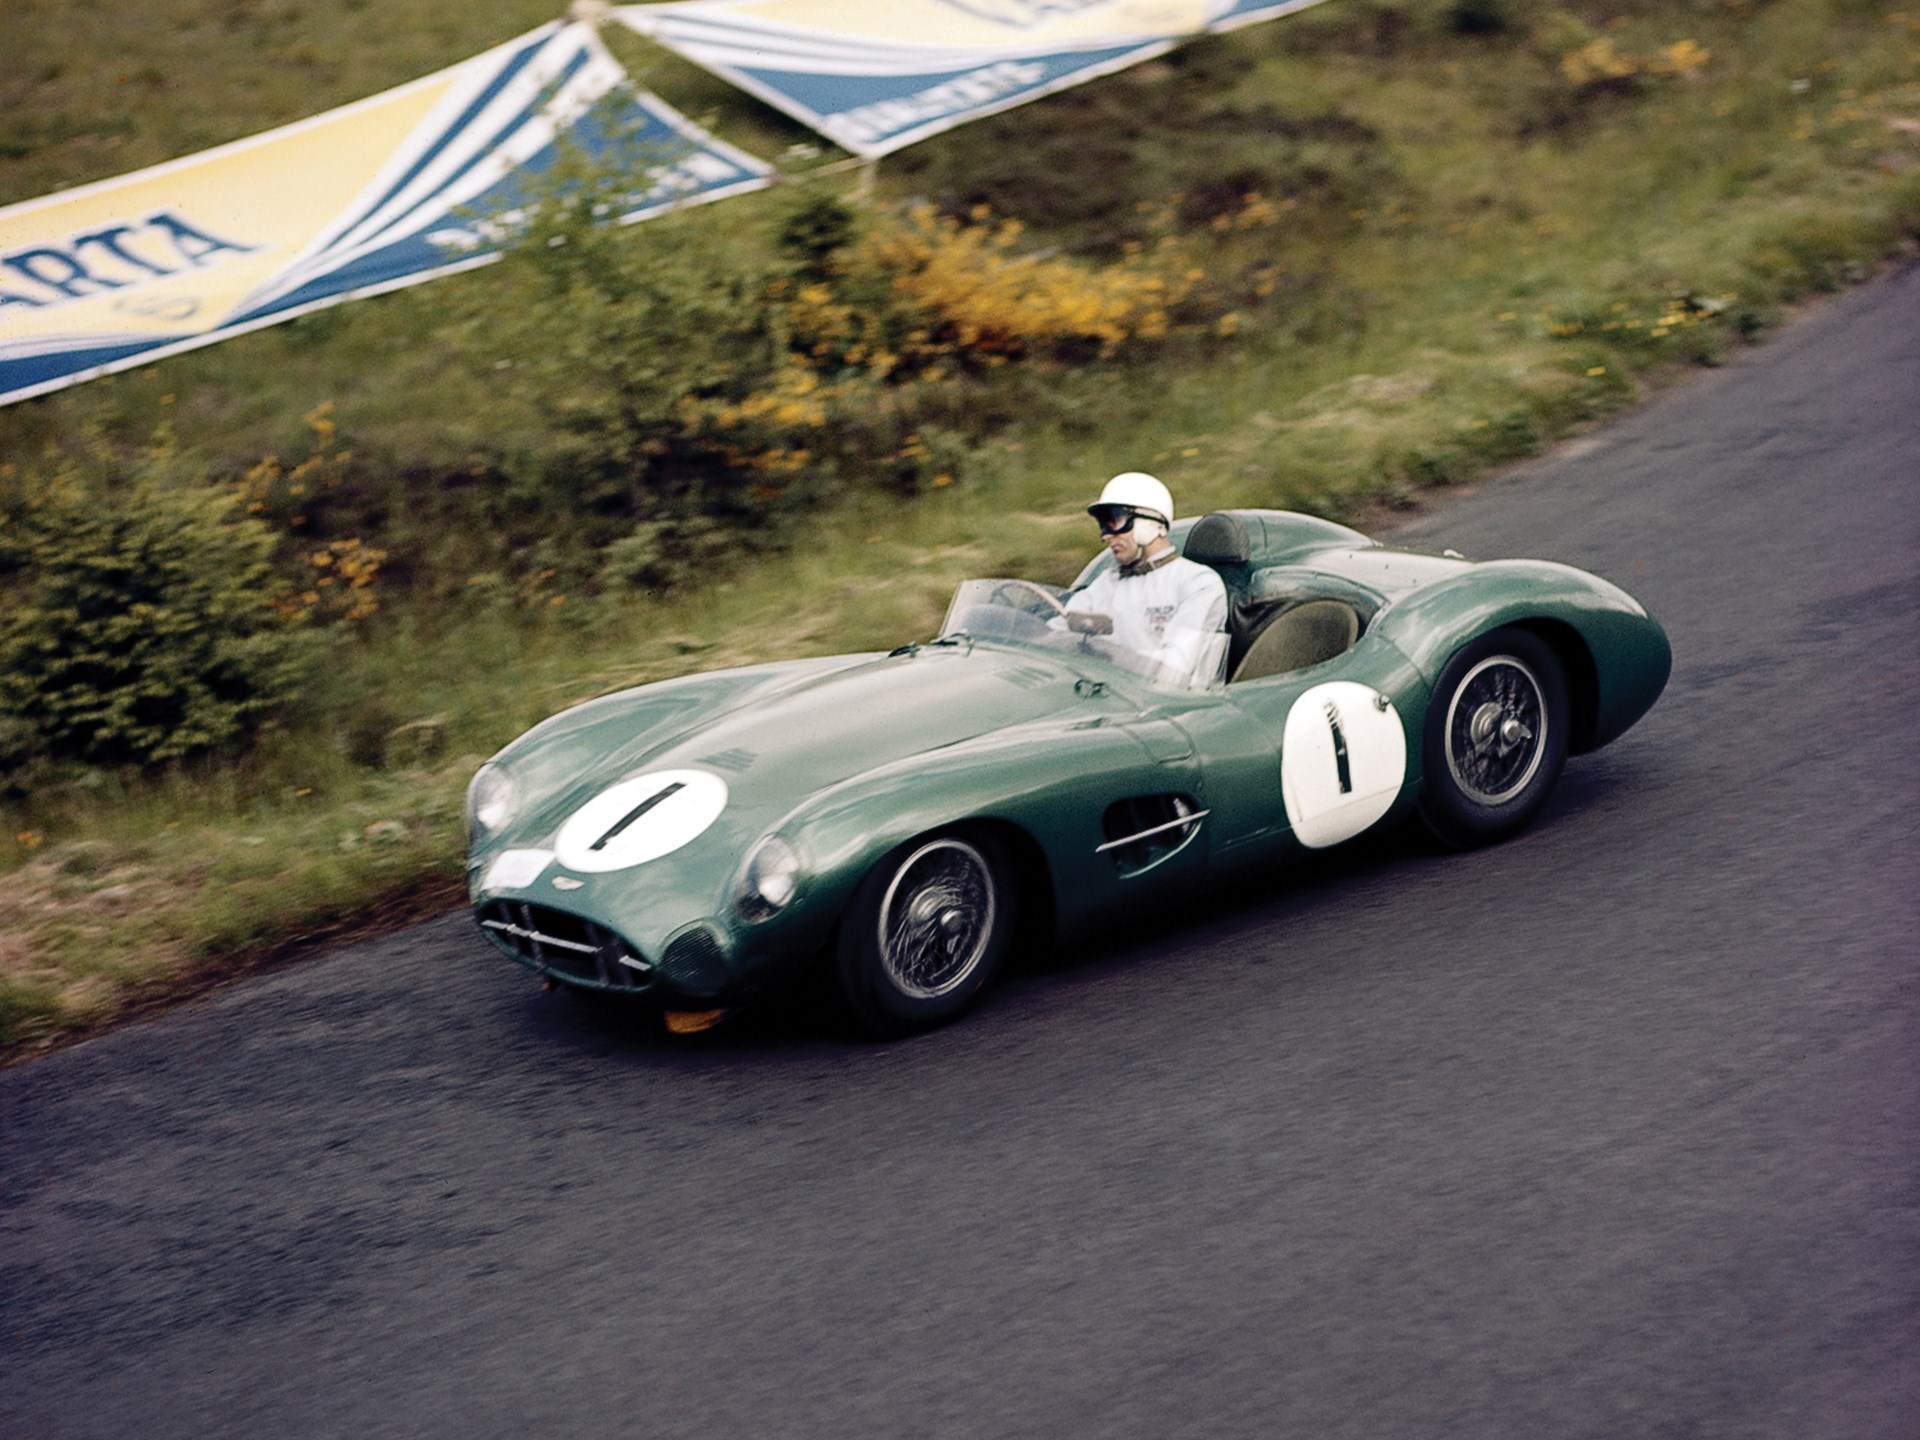 DBR1/1 races to a first place finish at the 1959 1000km of the Nürburgring.